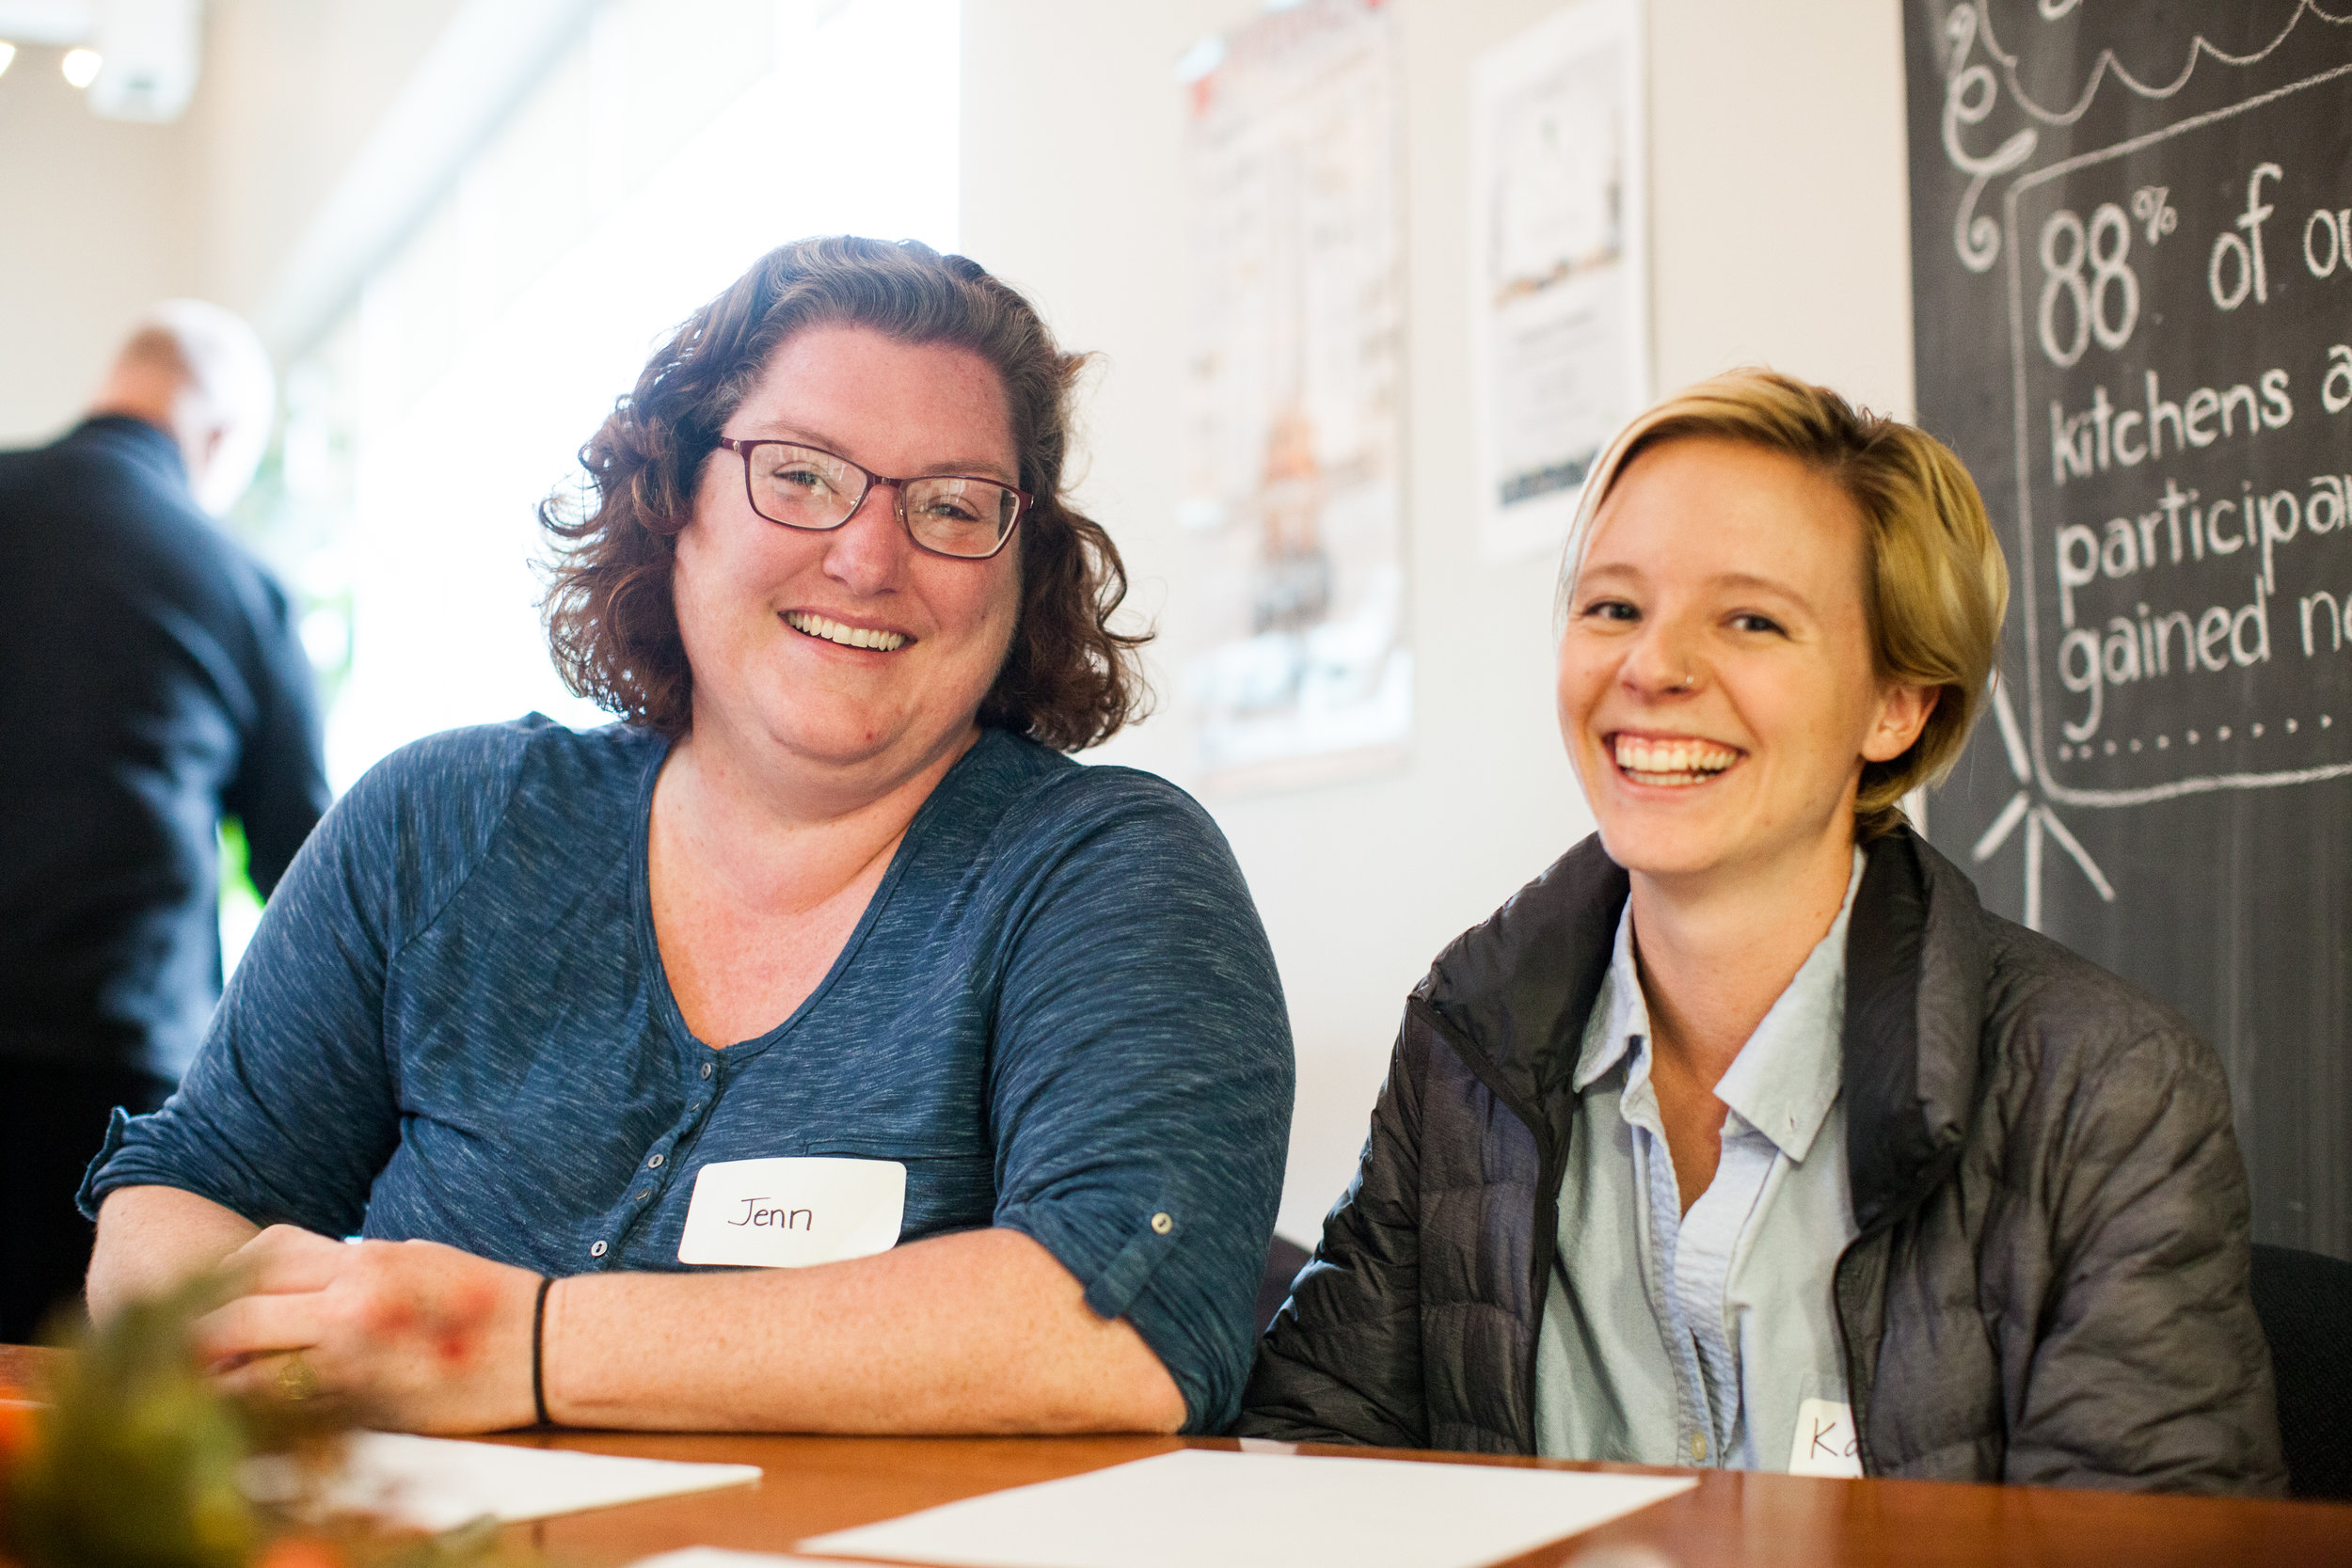 (left):  Jenn Prager,  Family Support Worker,  jprager@dartmouthfamilycentre.ca     (right):  Katherine Carey ,   Volunteer & Communications Coordinator,  kcarey@dartmouthfamilycentre.ca